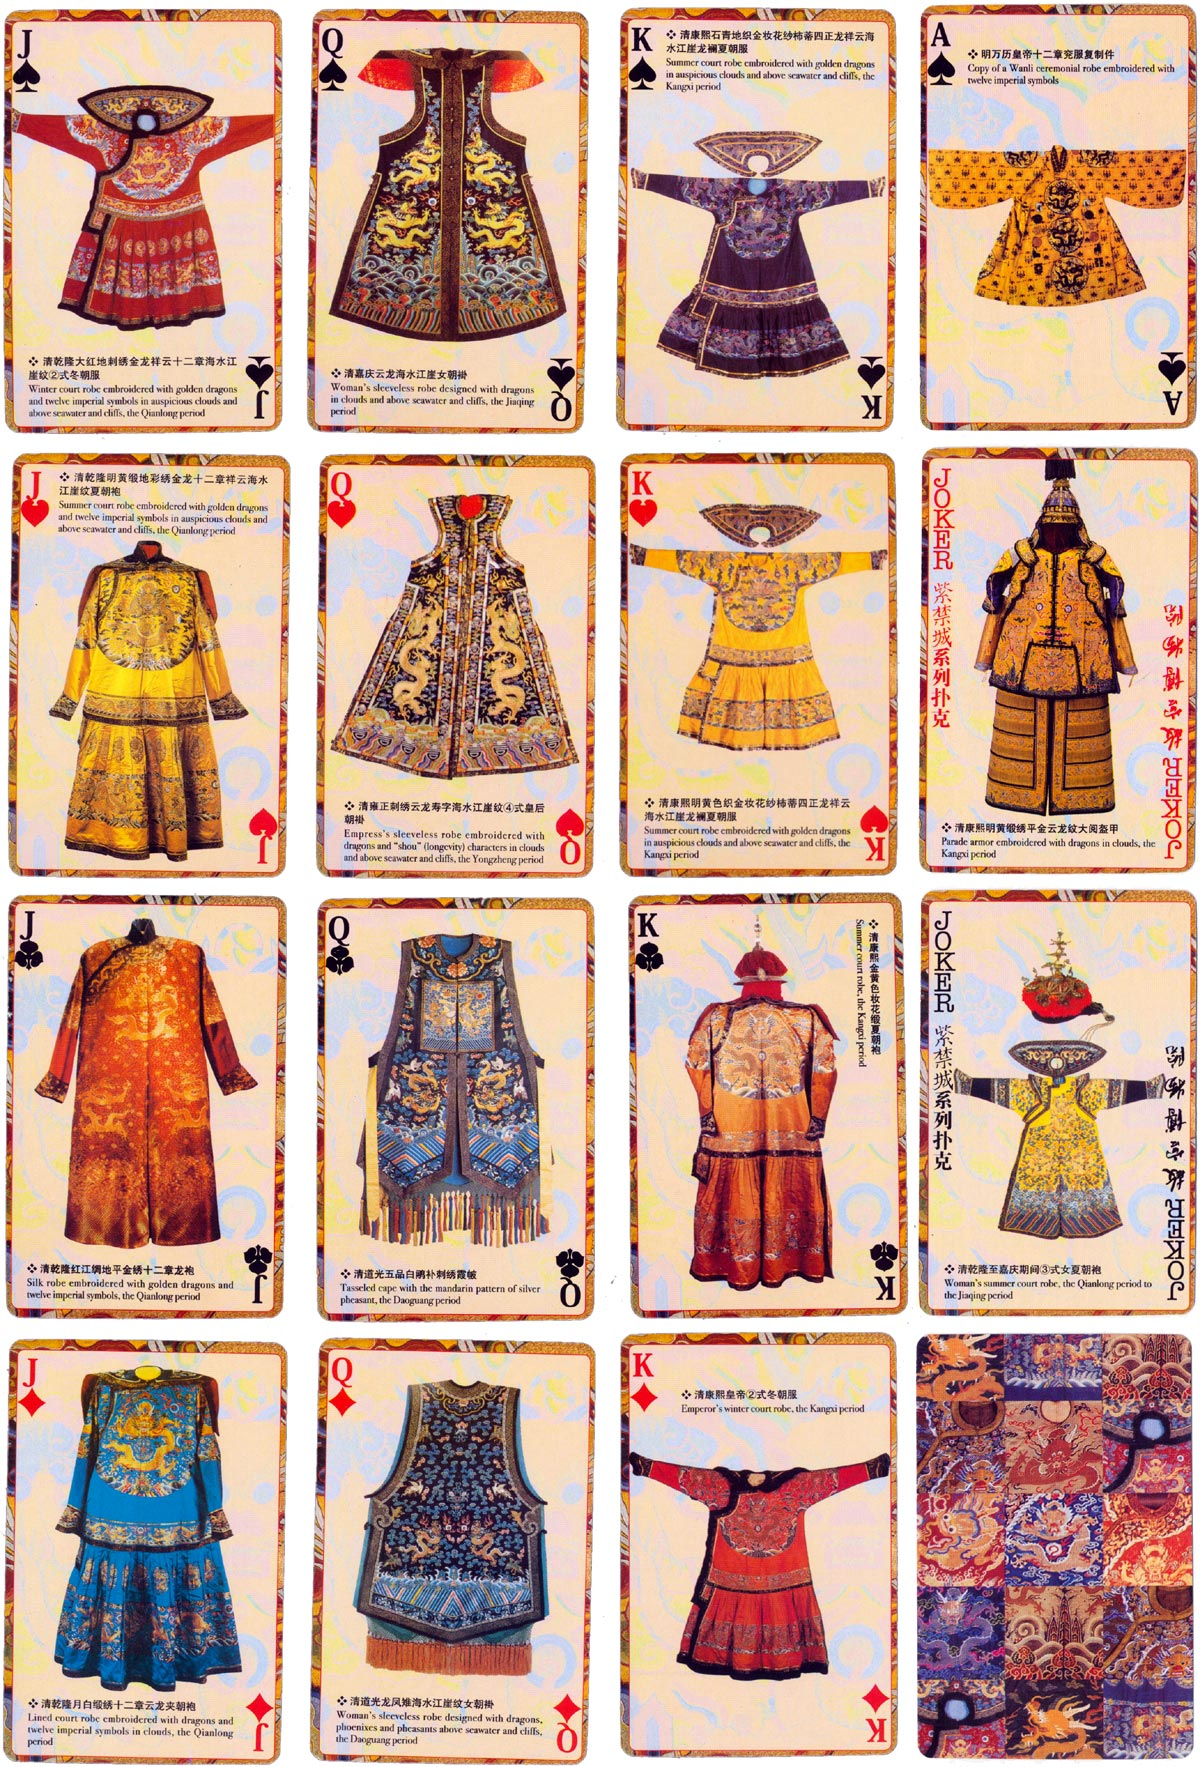 Chinese Dragon Robes playing cards from the collections of the Palace Museum in the Forbidden City in Beijing